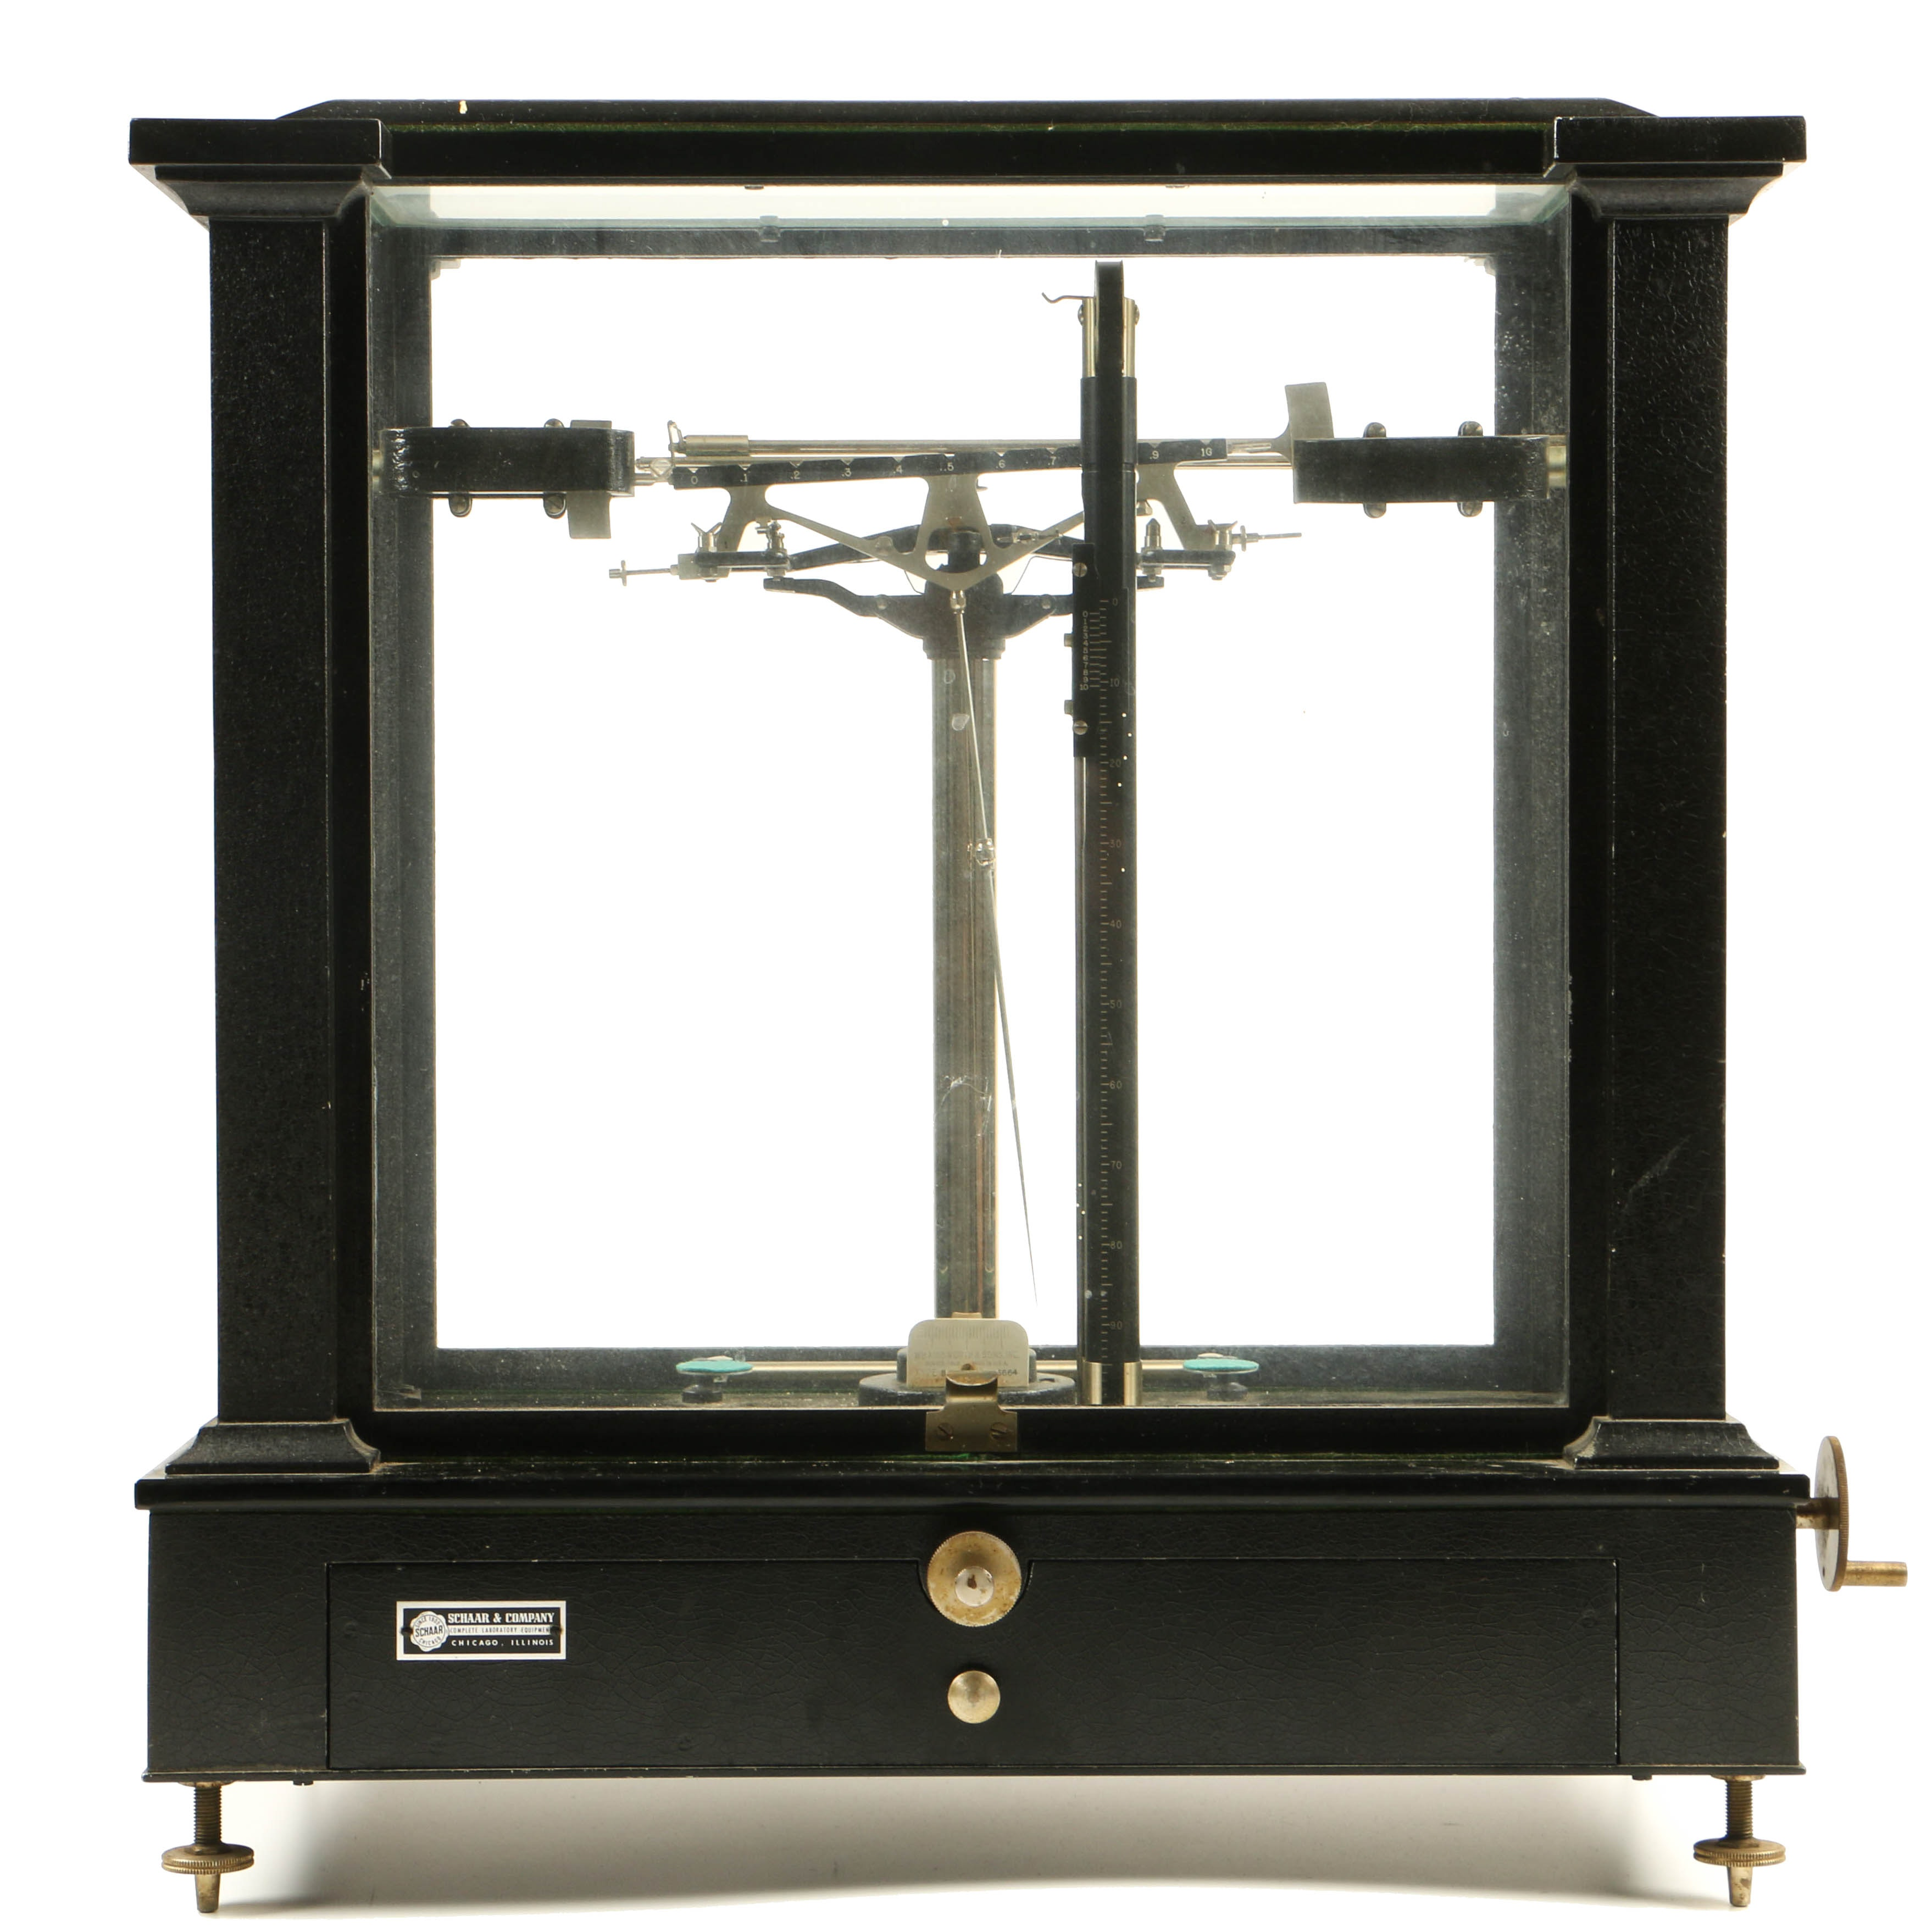 Wm. Ainsworth & Sons Type BB Precision Analytical Balance Scale